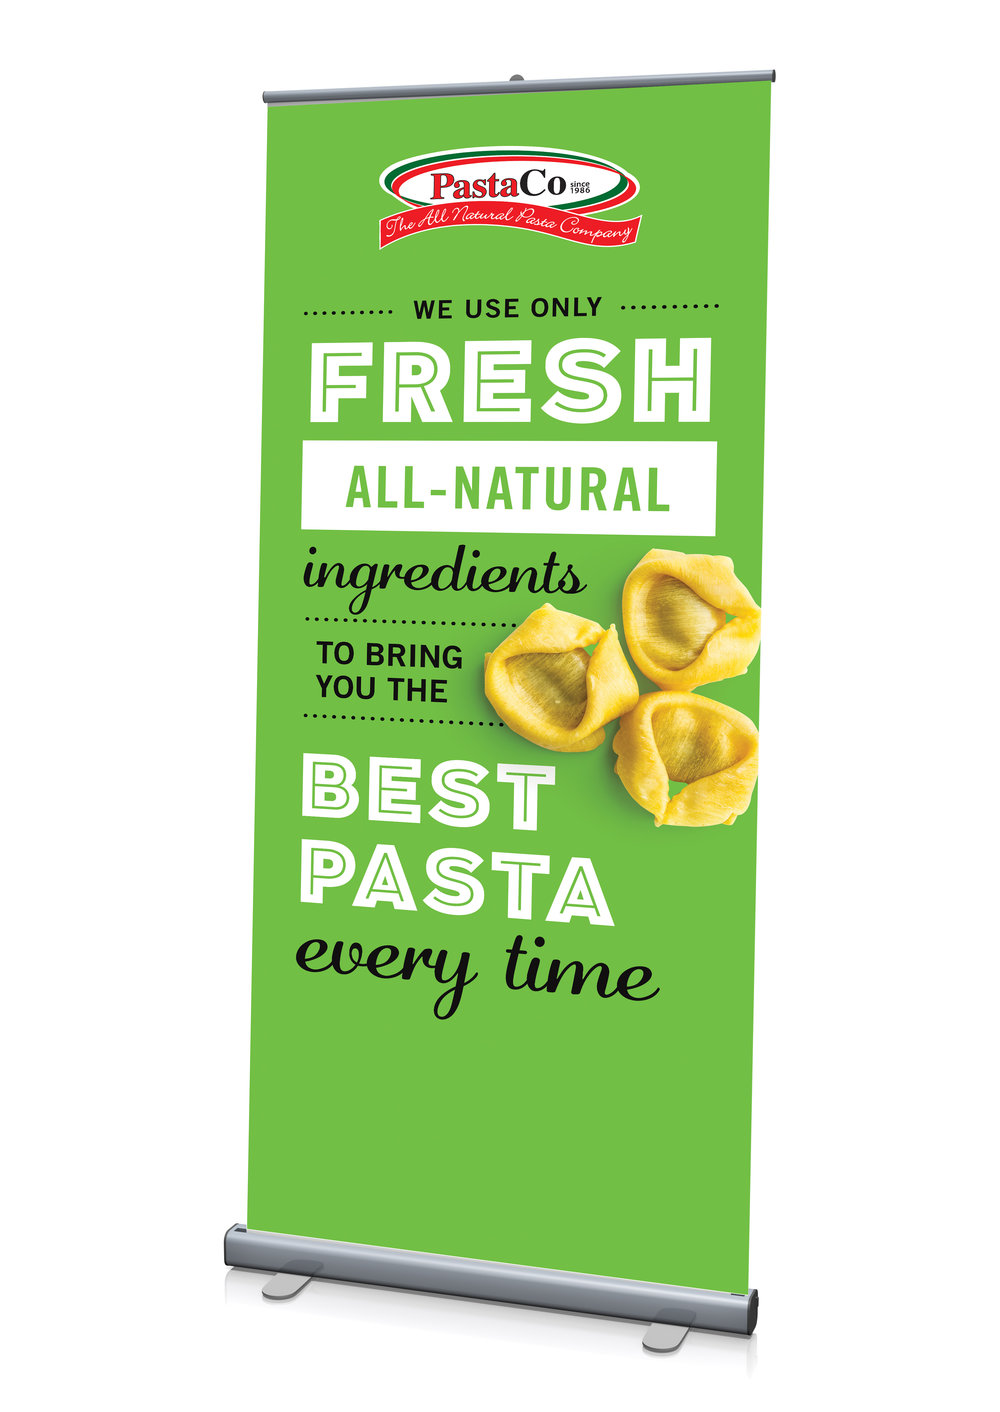 Pasta Co. Tradeshow Banner design